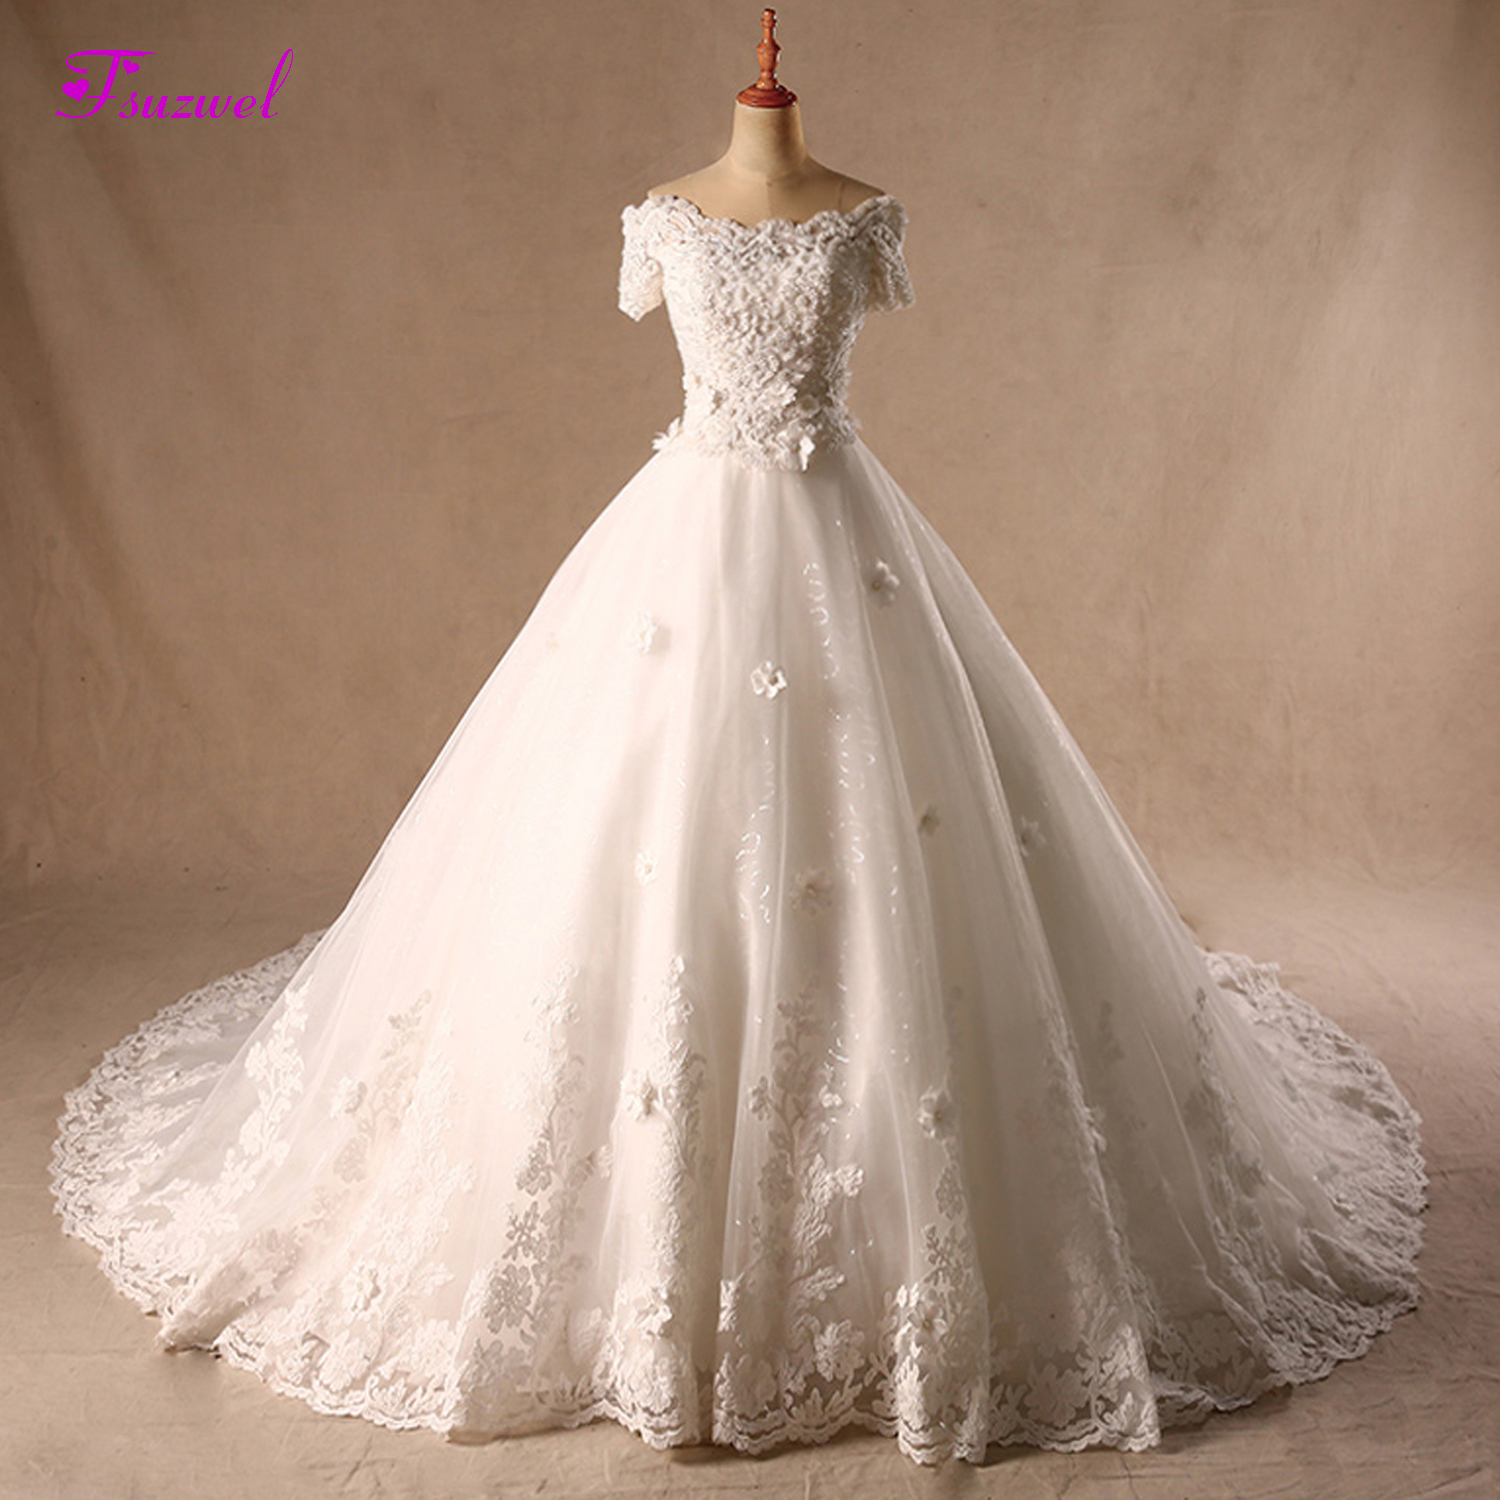 Fsuzwel Boat Neck Appliques Lace Up Flowers A-line Wedding Dresses 2019 Pearls Beaded Chapel Train Wedding Gown Vestido de Noiva